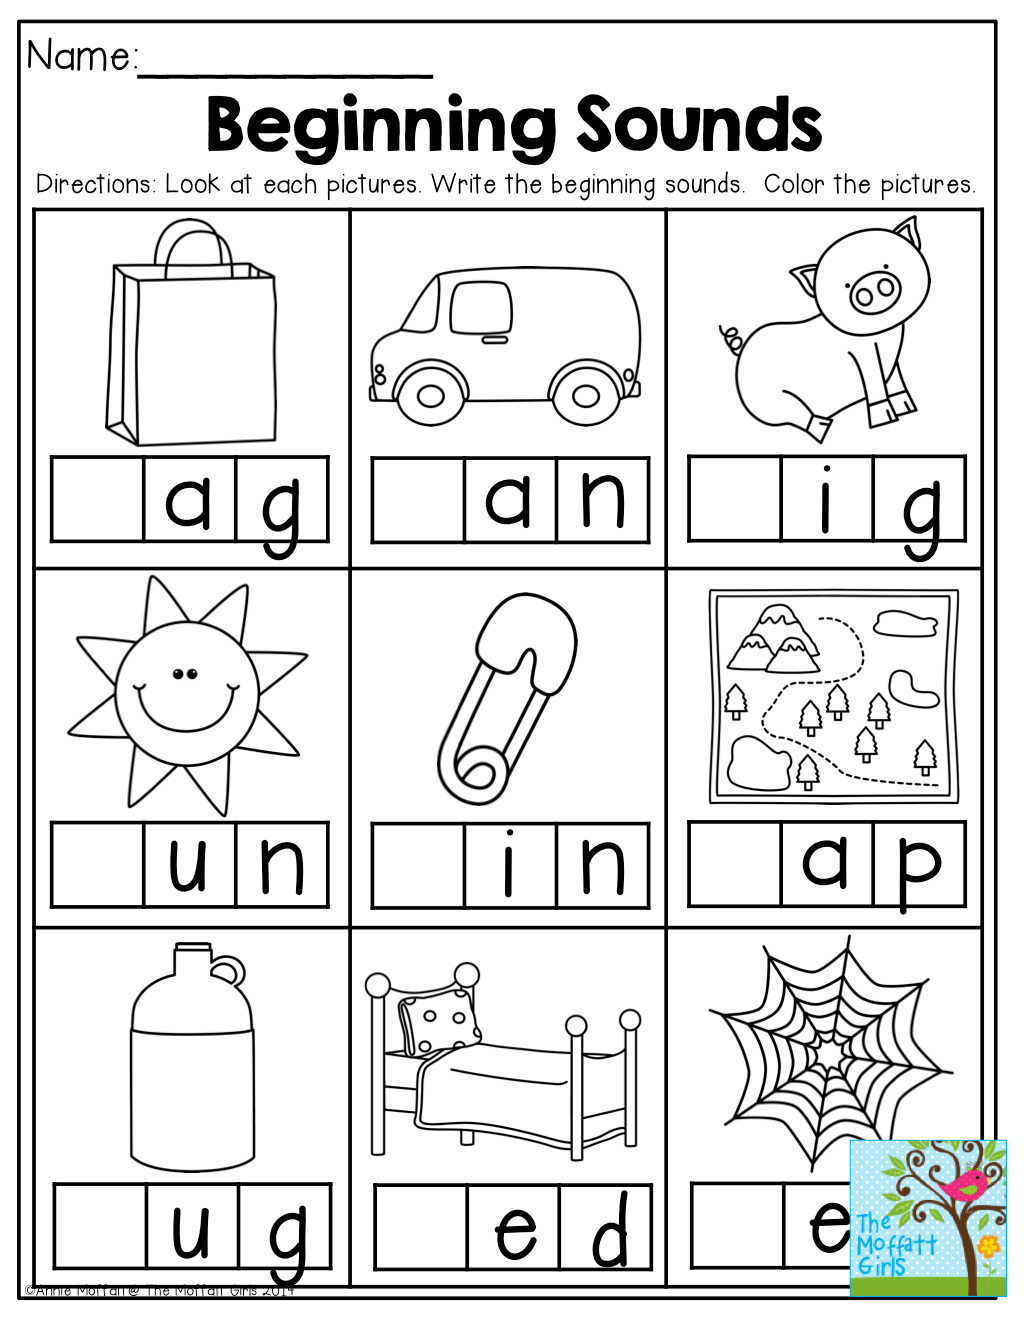 Worksheet Beginning Sounds Worksheets Worksheet Fun